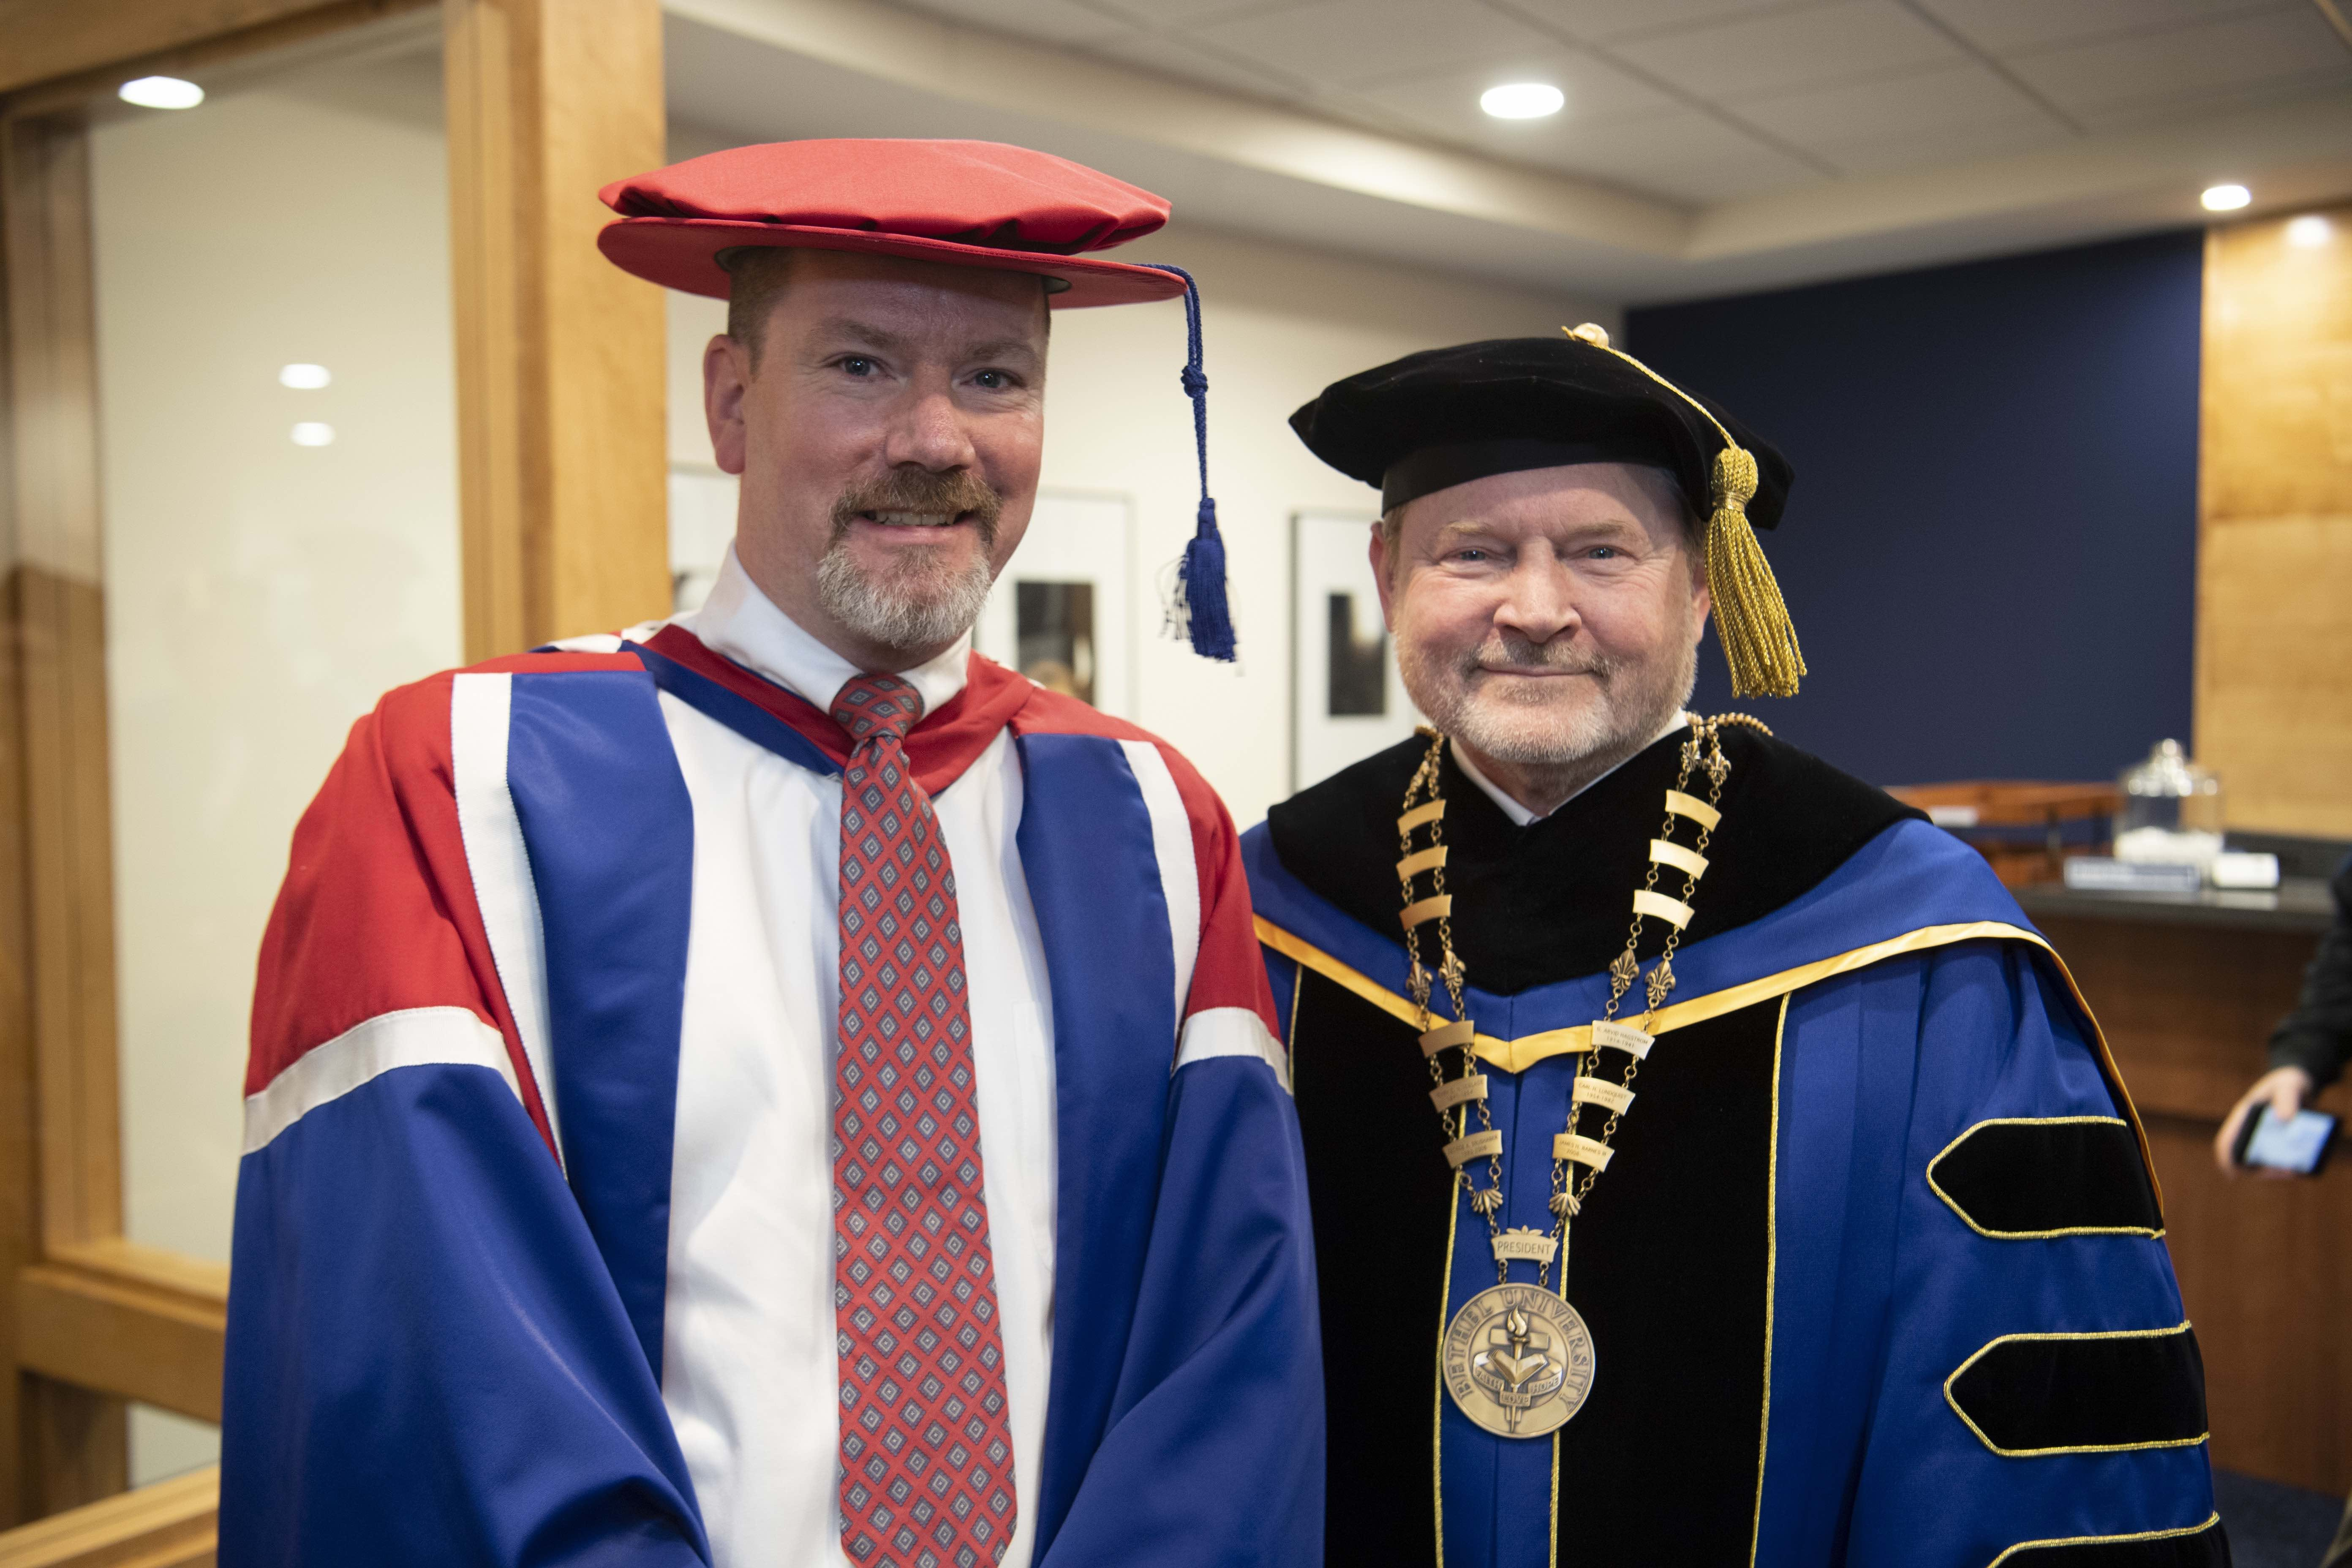 Peter T. Vogt S'97, a former Old Testament faculty member, was installed as dean of Bethel Seminary on February 4. Vogt, left, stands with Bethel University President Jay Barnes before the service.